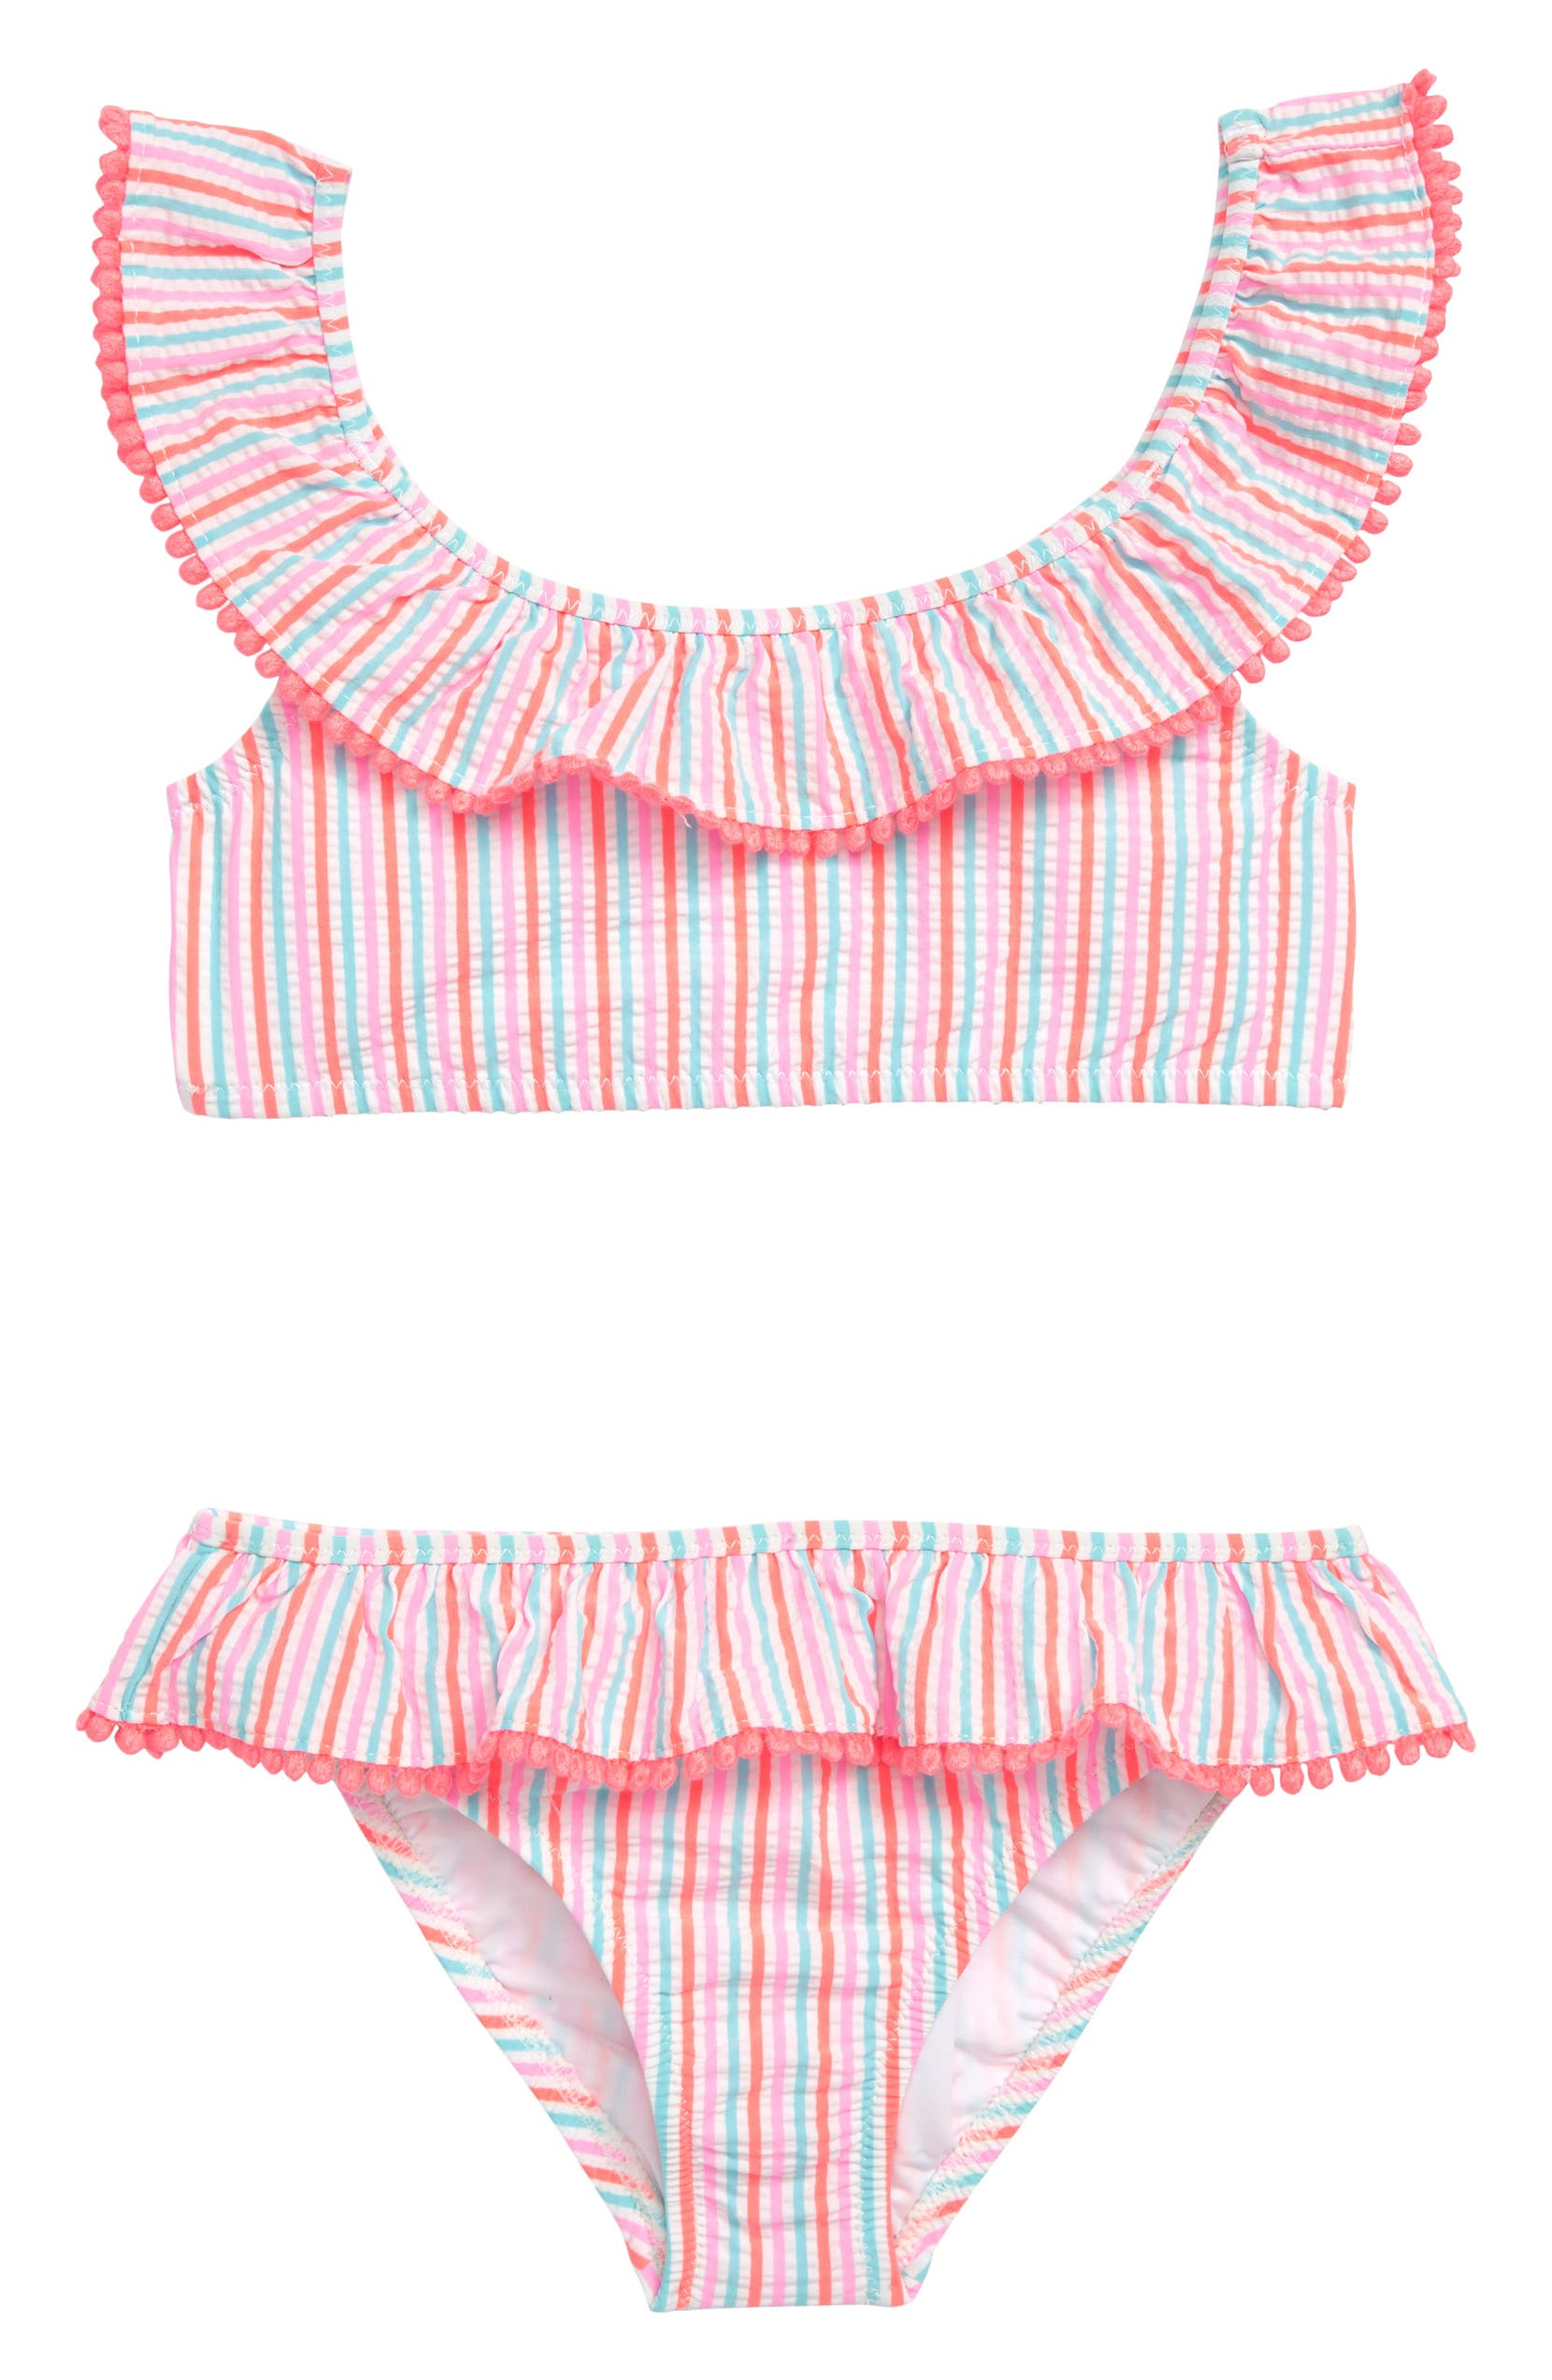 9bf303a36de5b crewcuts by J.Crew Ruffle Seersucker Two-Piece Swimsuit (Toddler Girls, Little  Girls & Big Girls) | Nordstrom